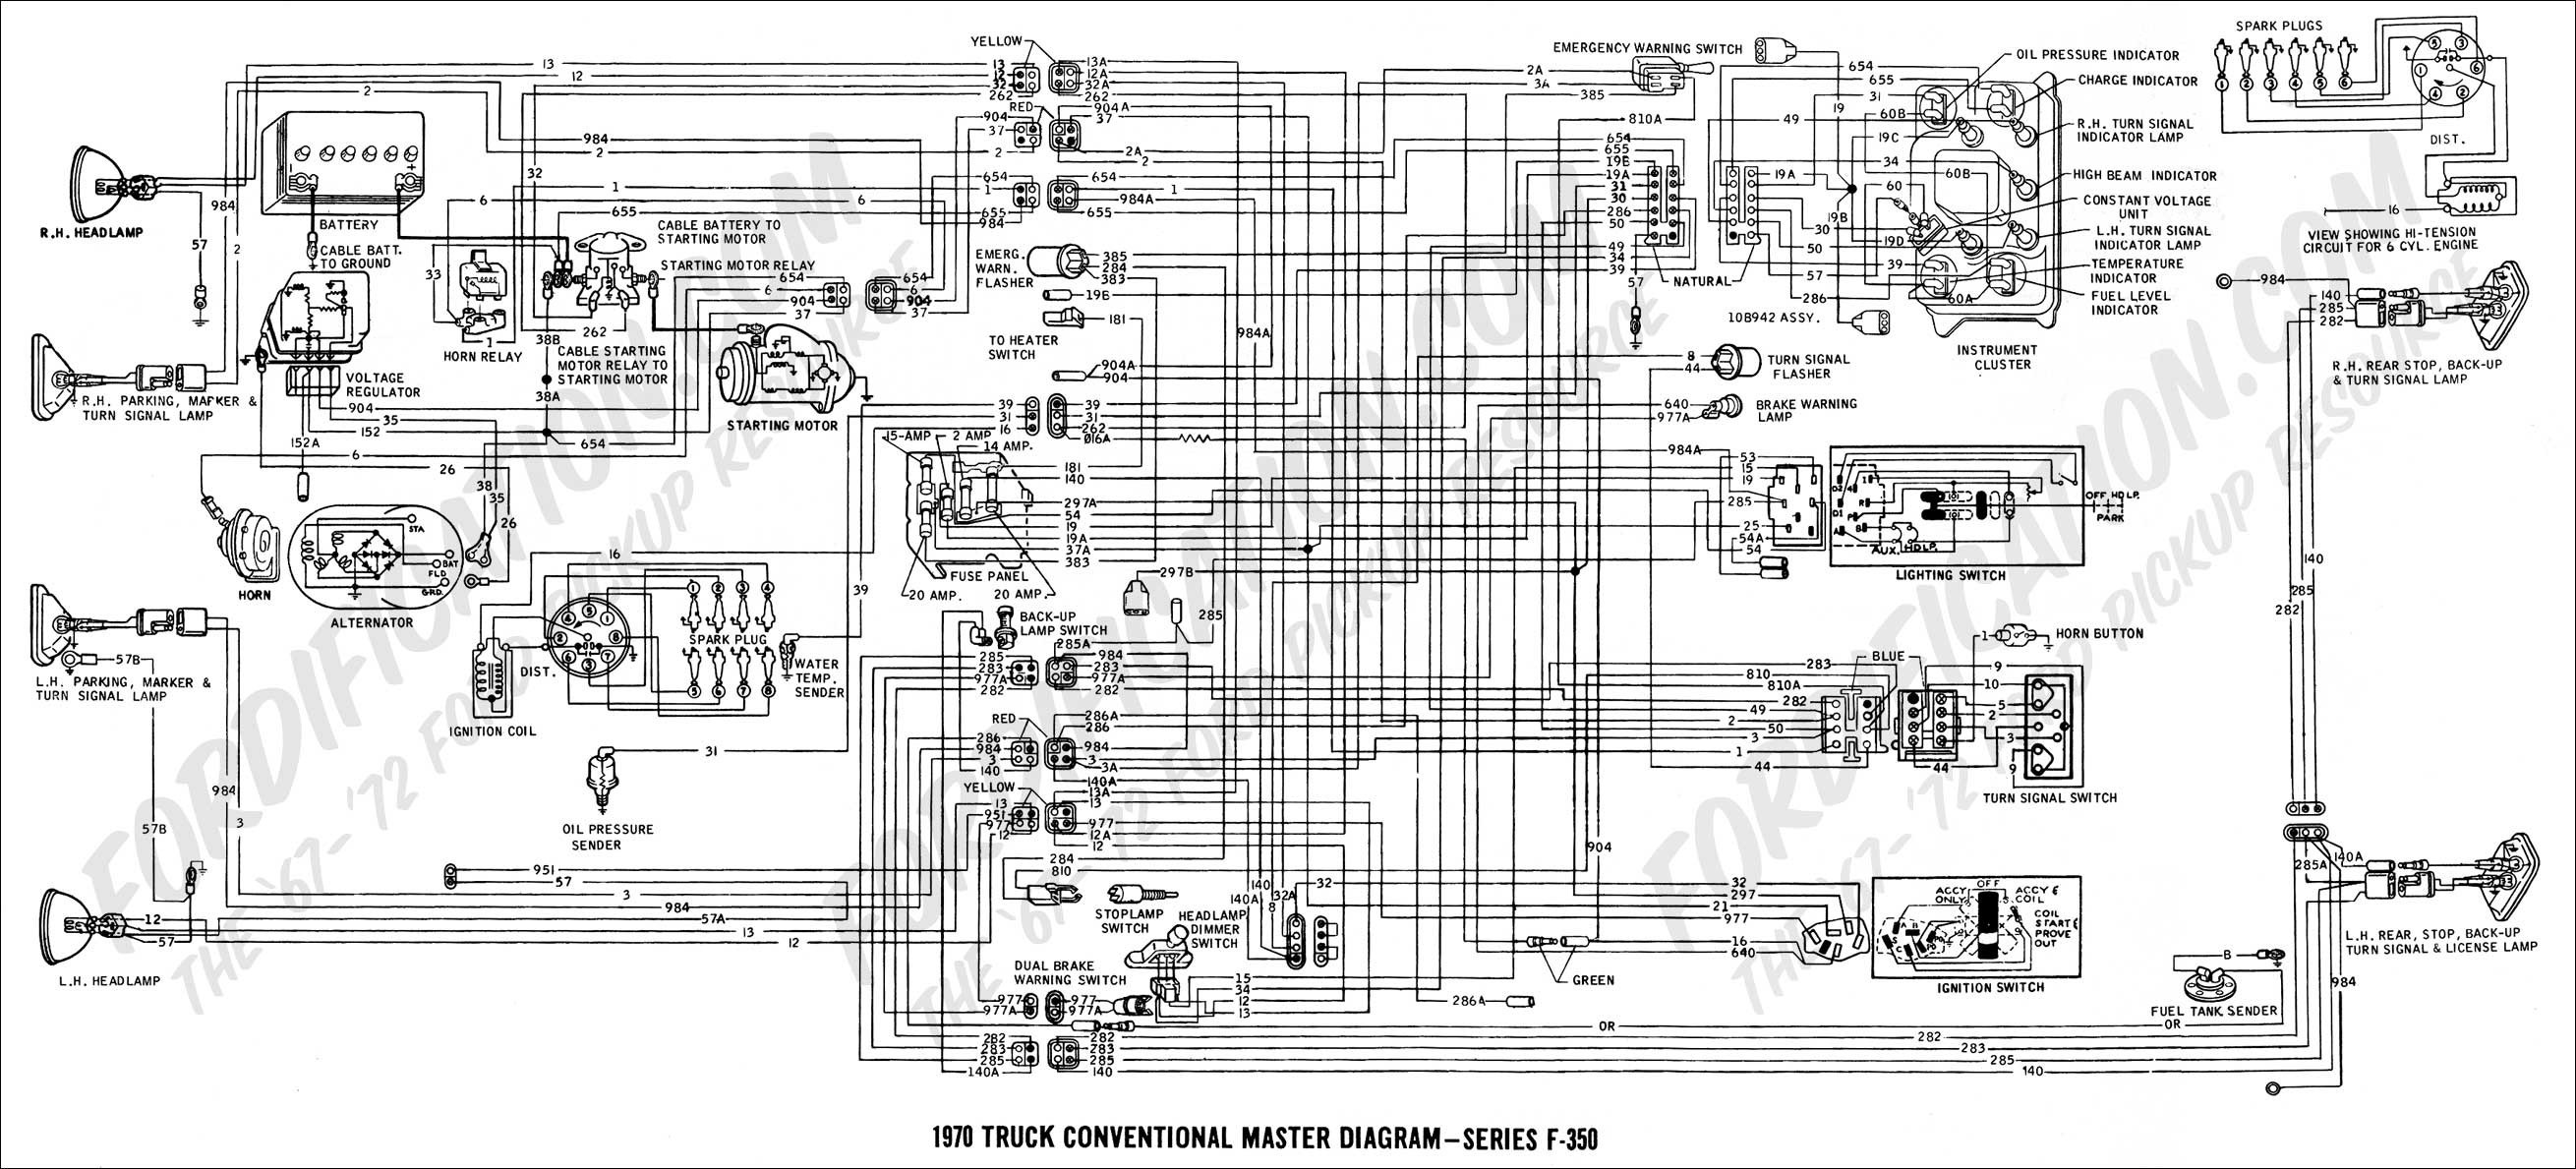 Integra Alarm Wiring Diagram New ford E350 Wiring Diagram Free Wiring solutions